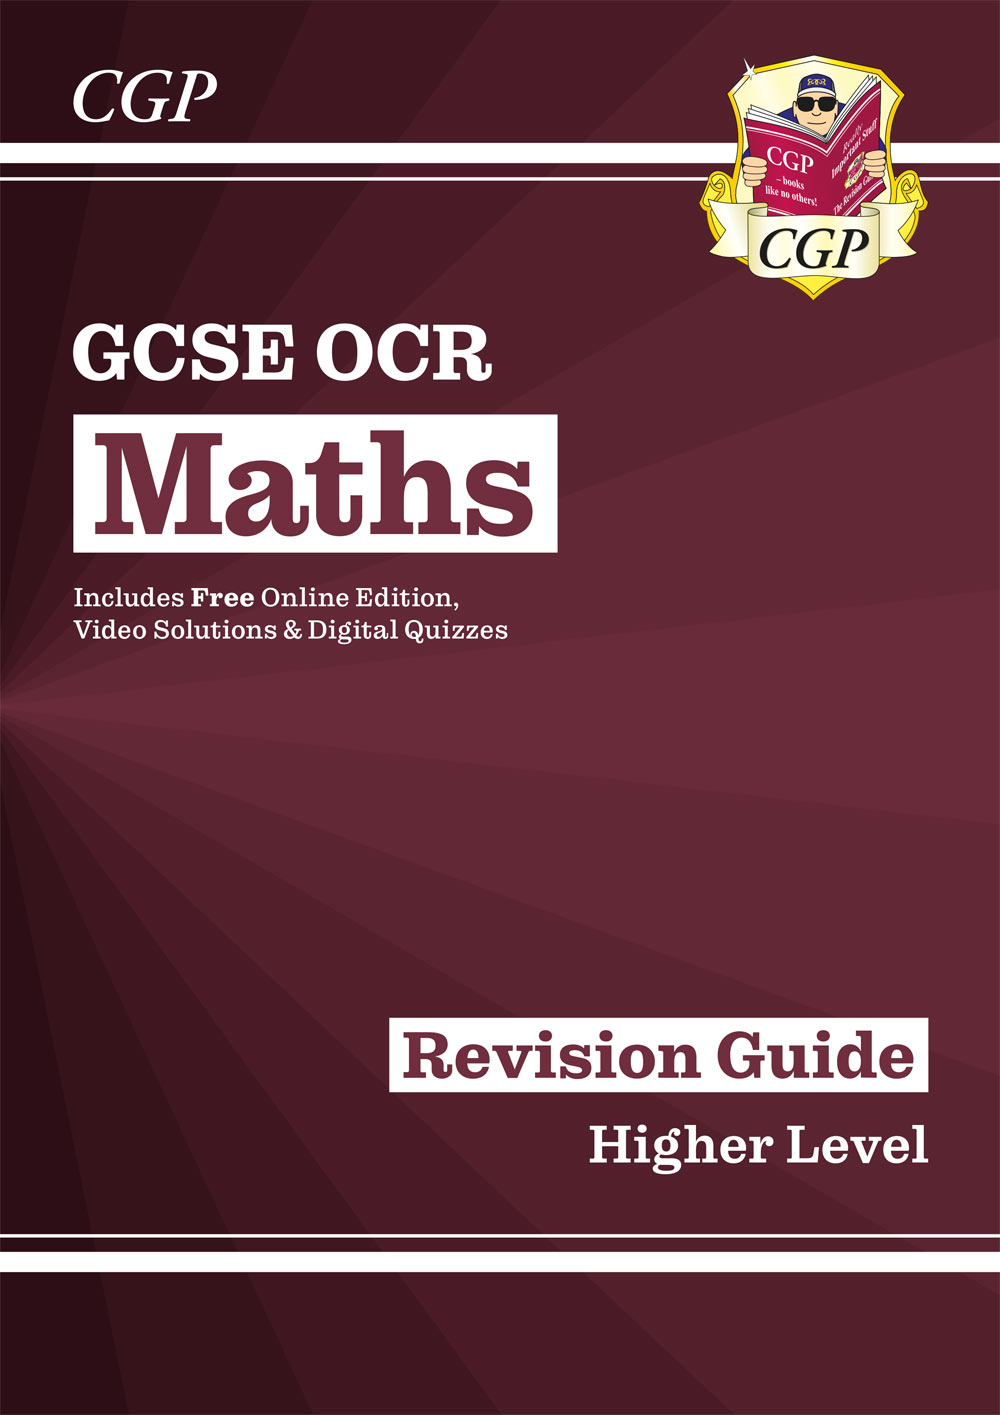 MCHR47 - New 2021 GCSE Maths OCR Revision Guide: Higher inc Online Edition, Videos & Quizzes